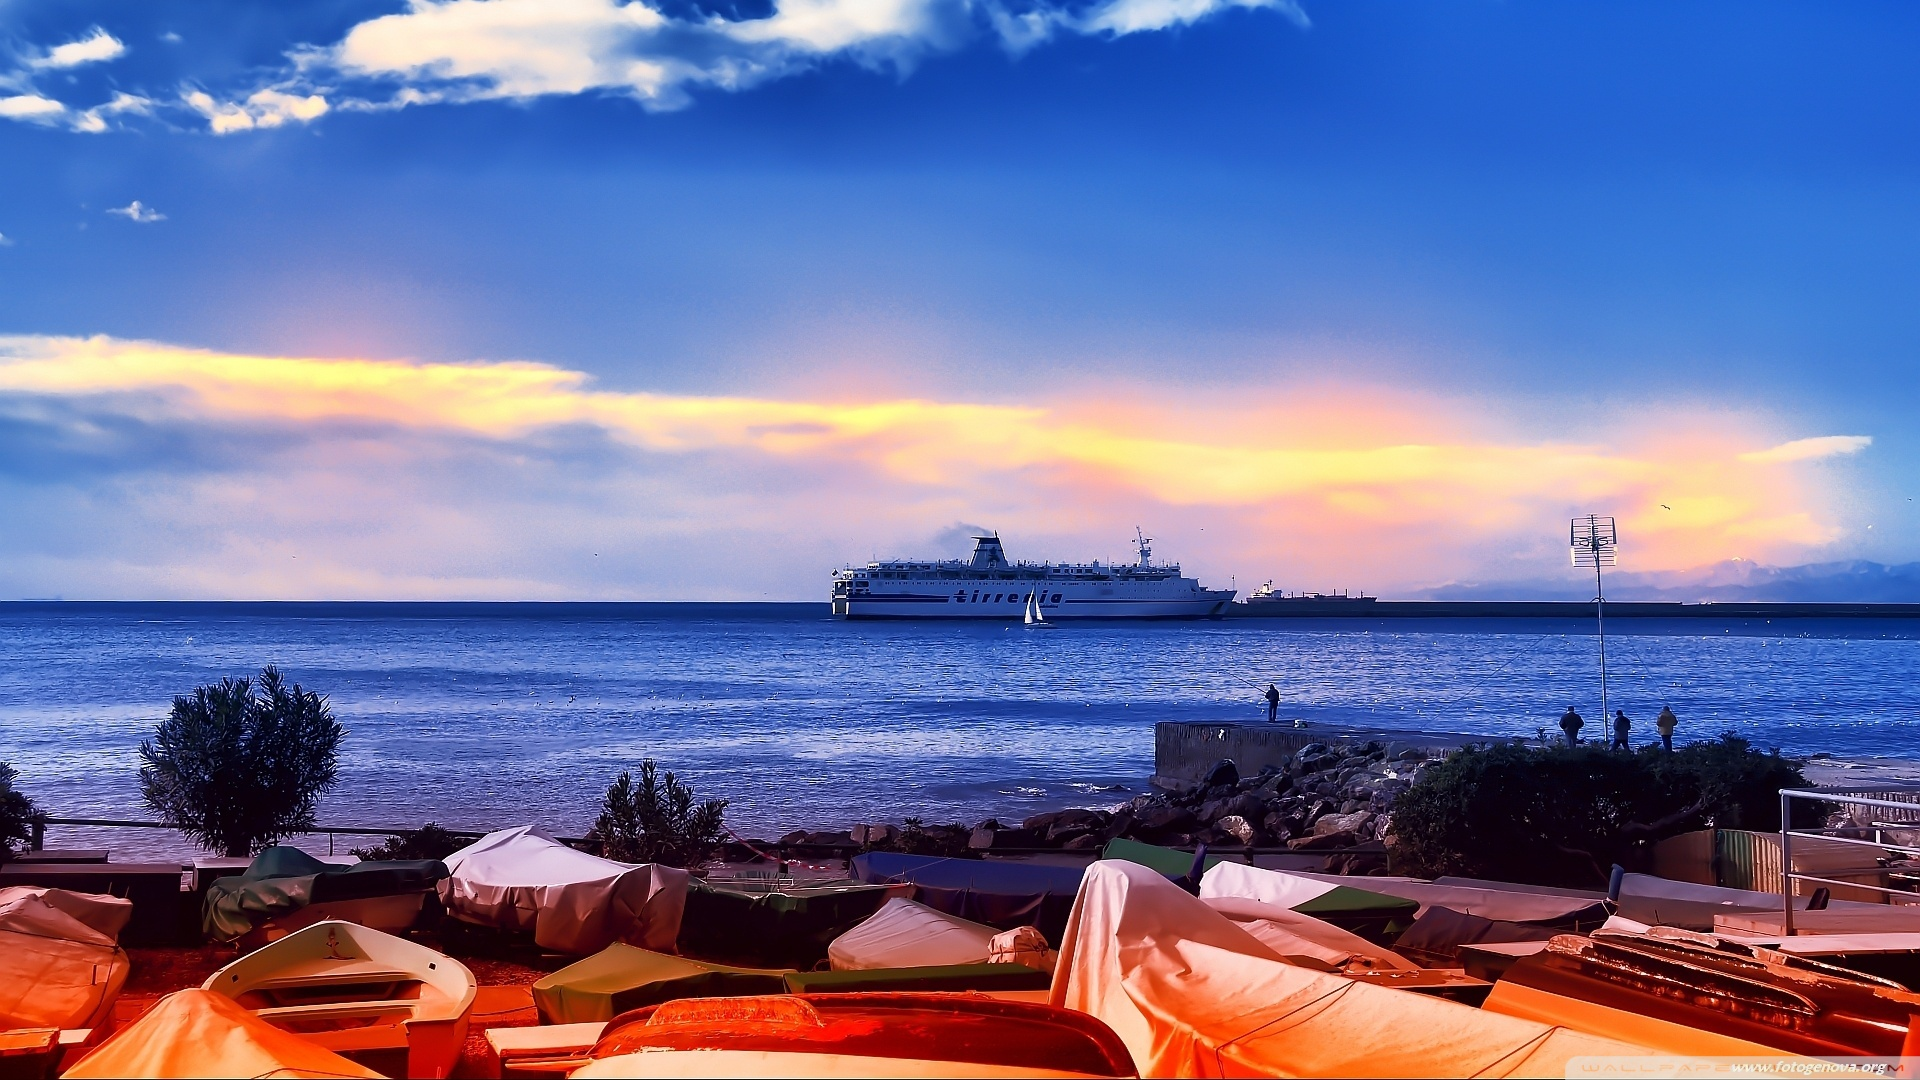 Cruise boats and houses